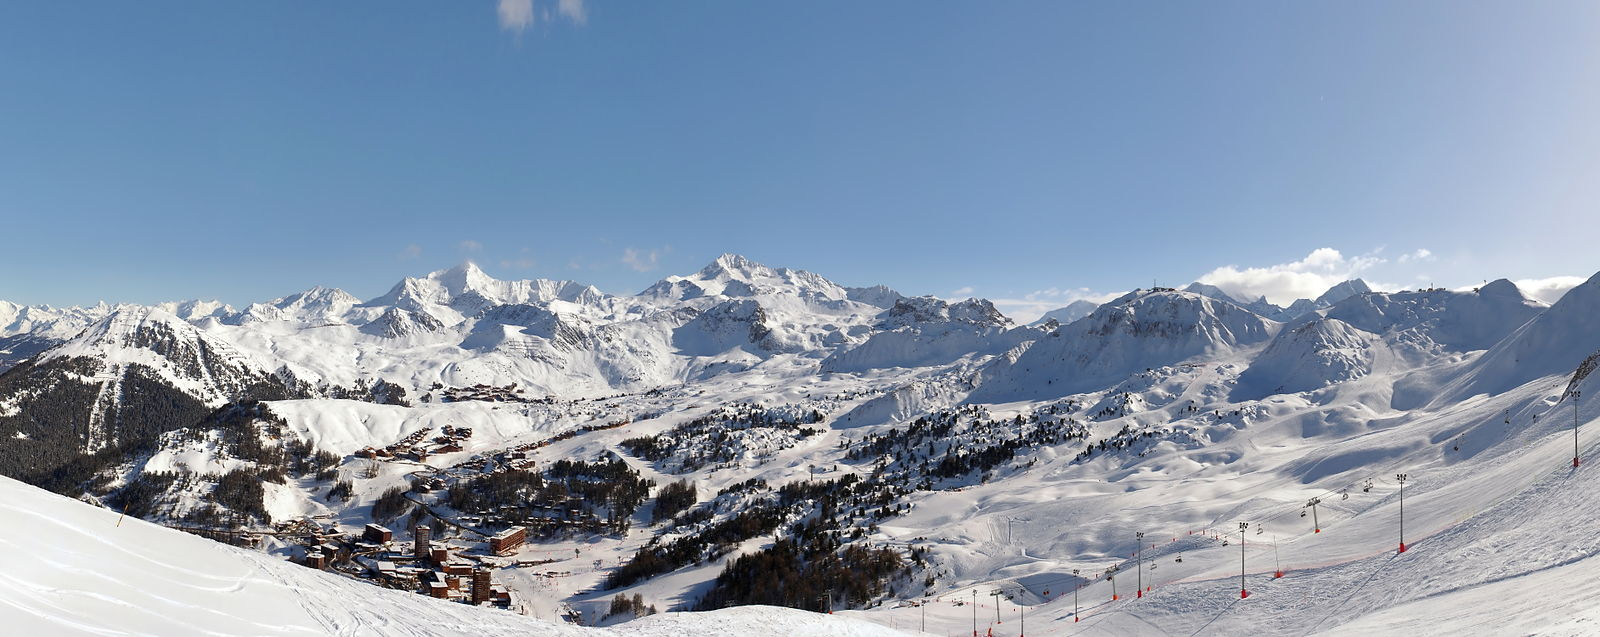 La Plagne Winter Panorama